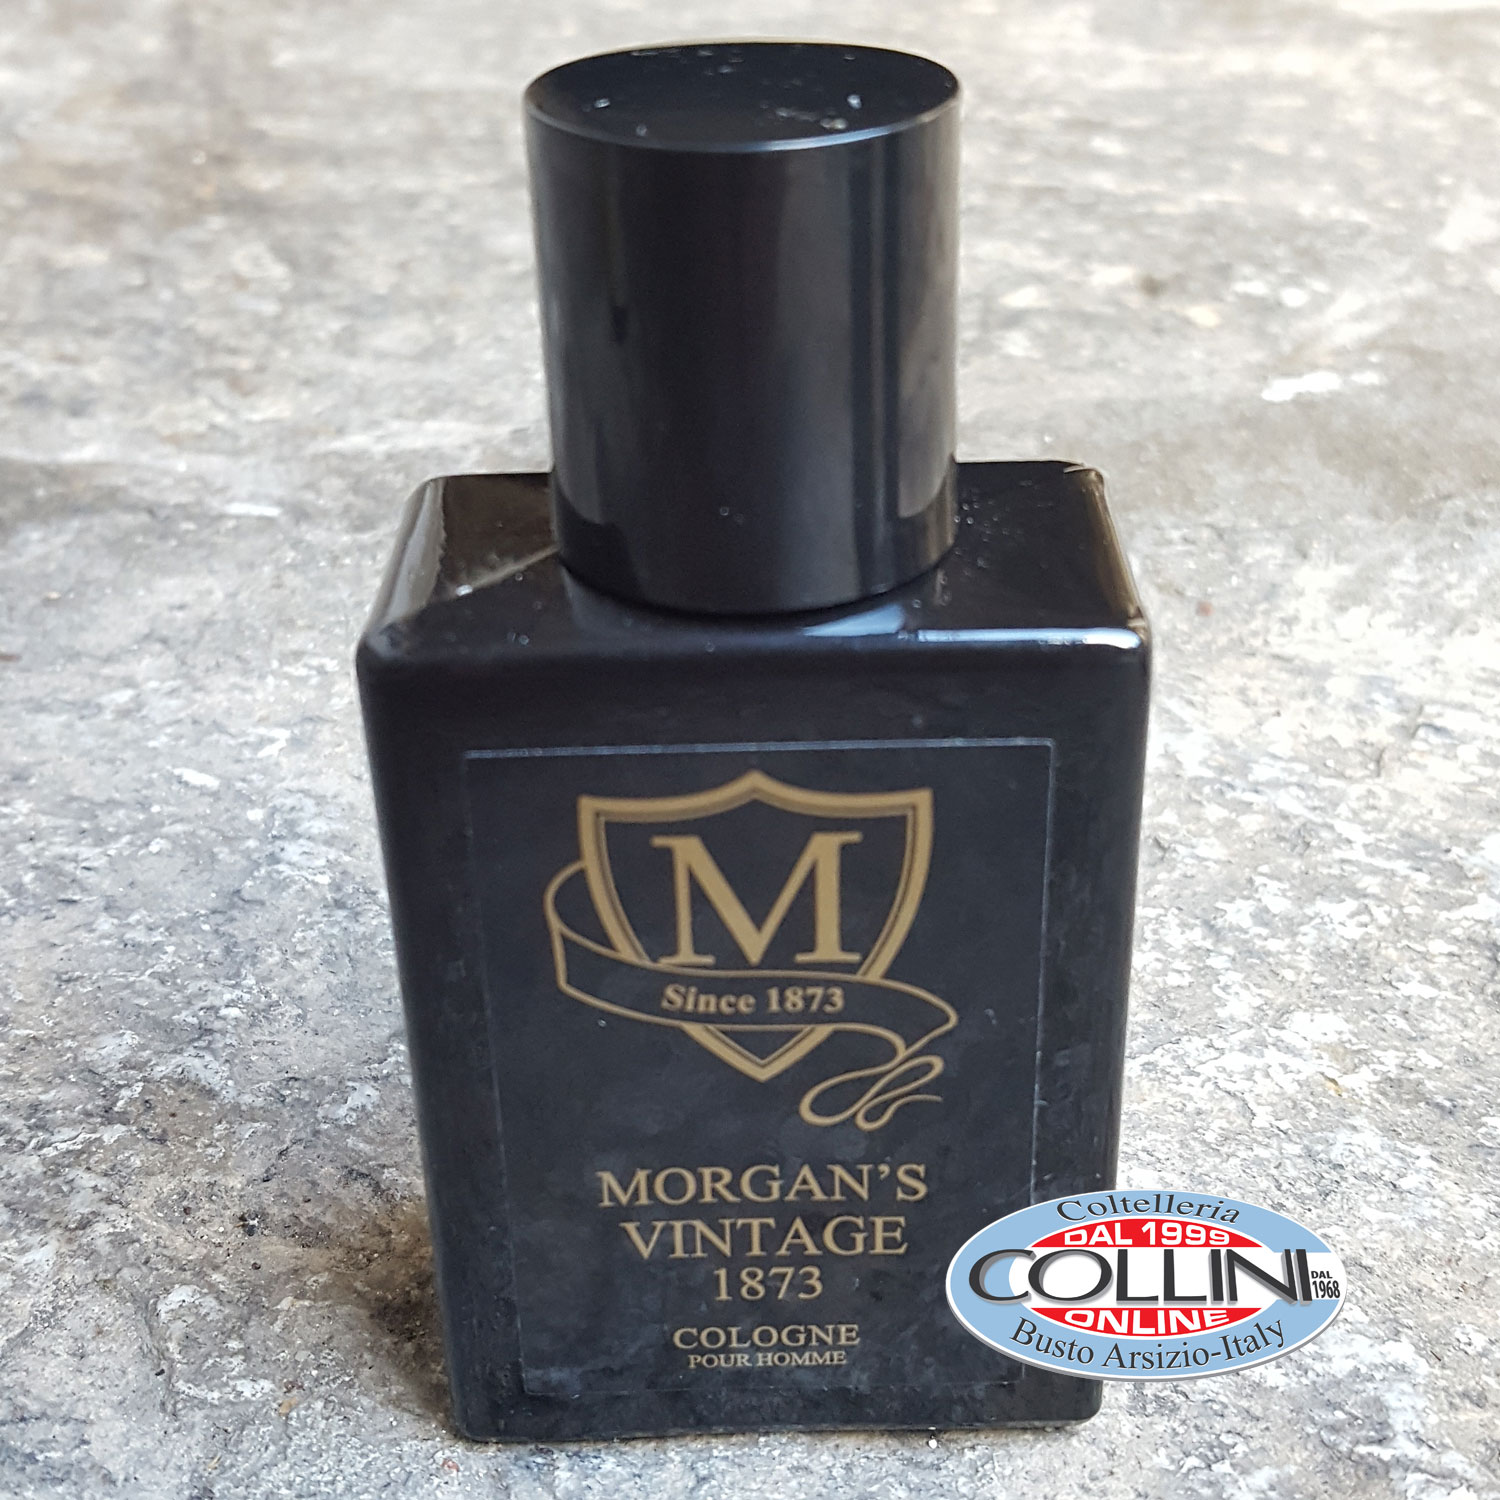 morgan 39 s vintage cologne 1873 made in uk. Black Bedroom Furniture Sets. Home Design Ideas